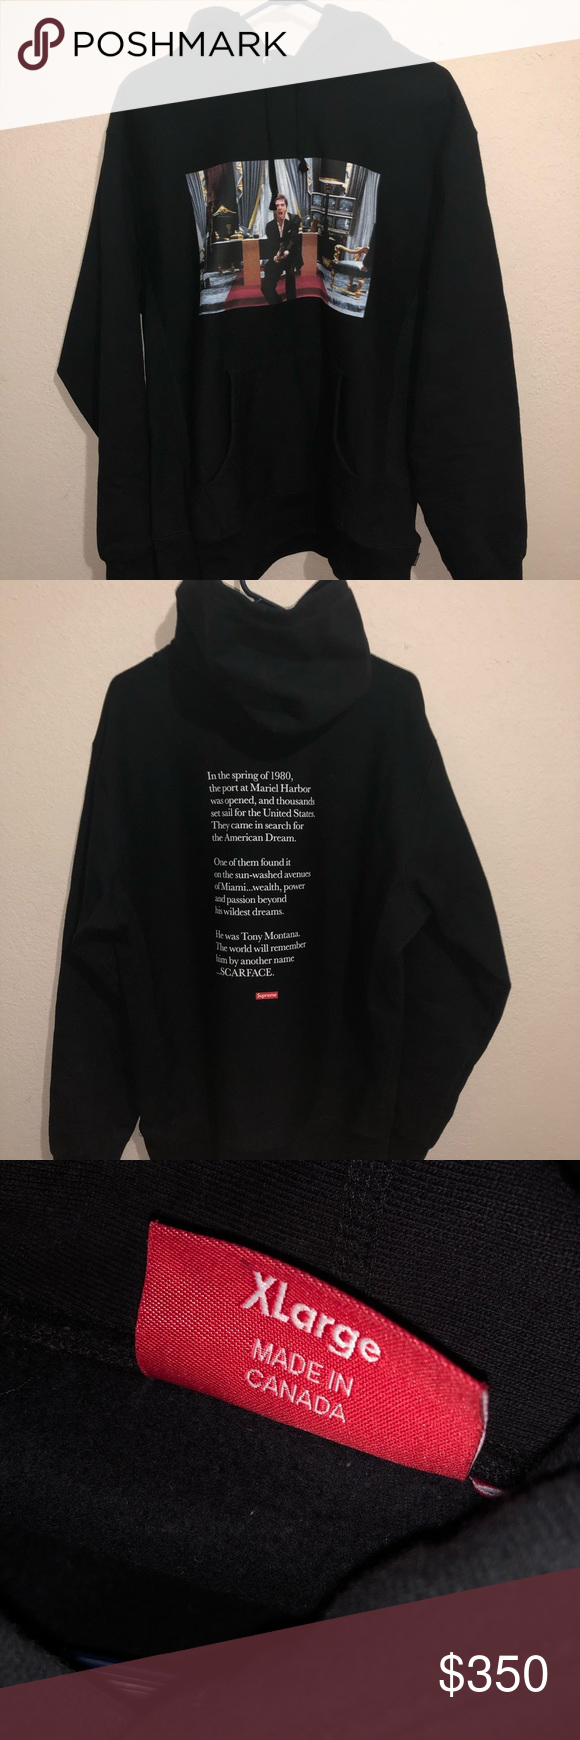 Supreme Scarface Hoodie 9 10 Xl But Fits More Like L Supreme Scarface Friend Hooded Black Supreme Sweaters Supreme Sweater Hoodies Clothes Design [ 1740 x 580 Pixel ]